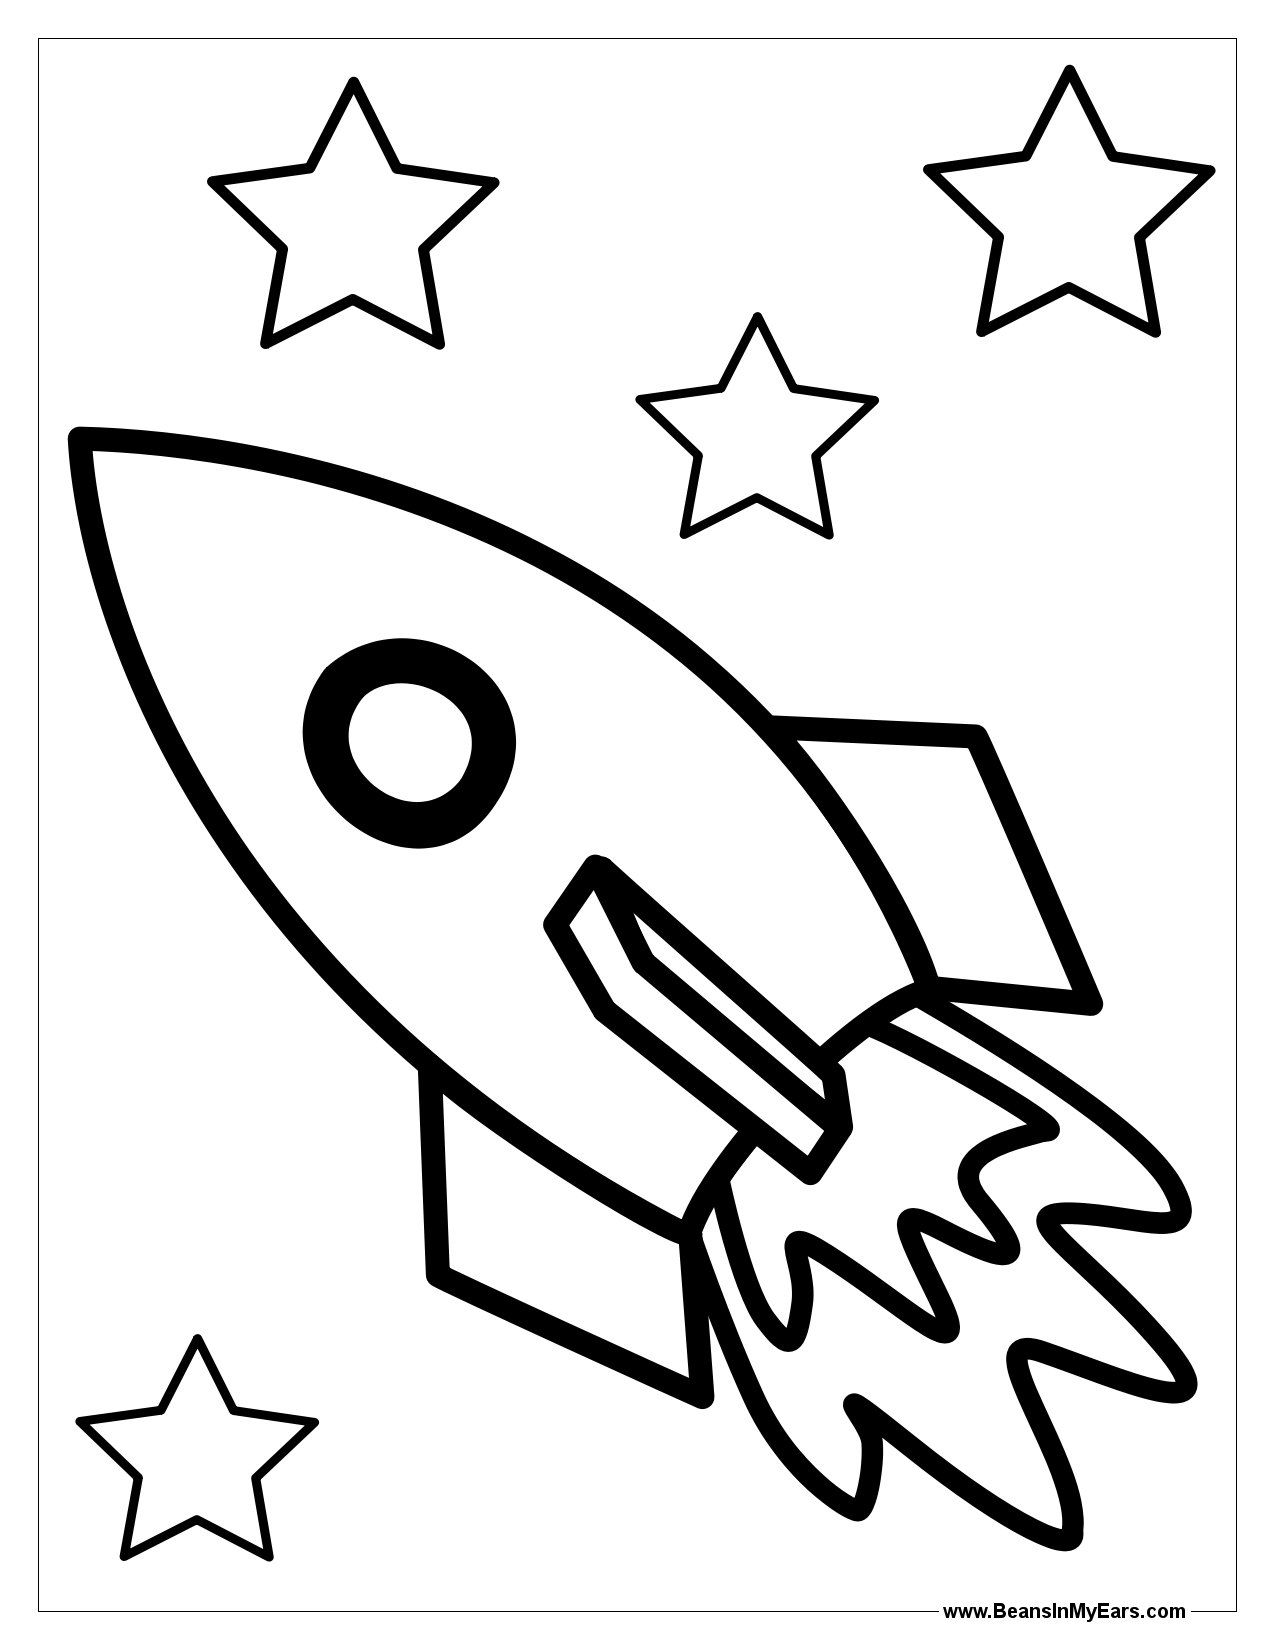 Astonishing ideas rocket ship coloring page at crafts rocket